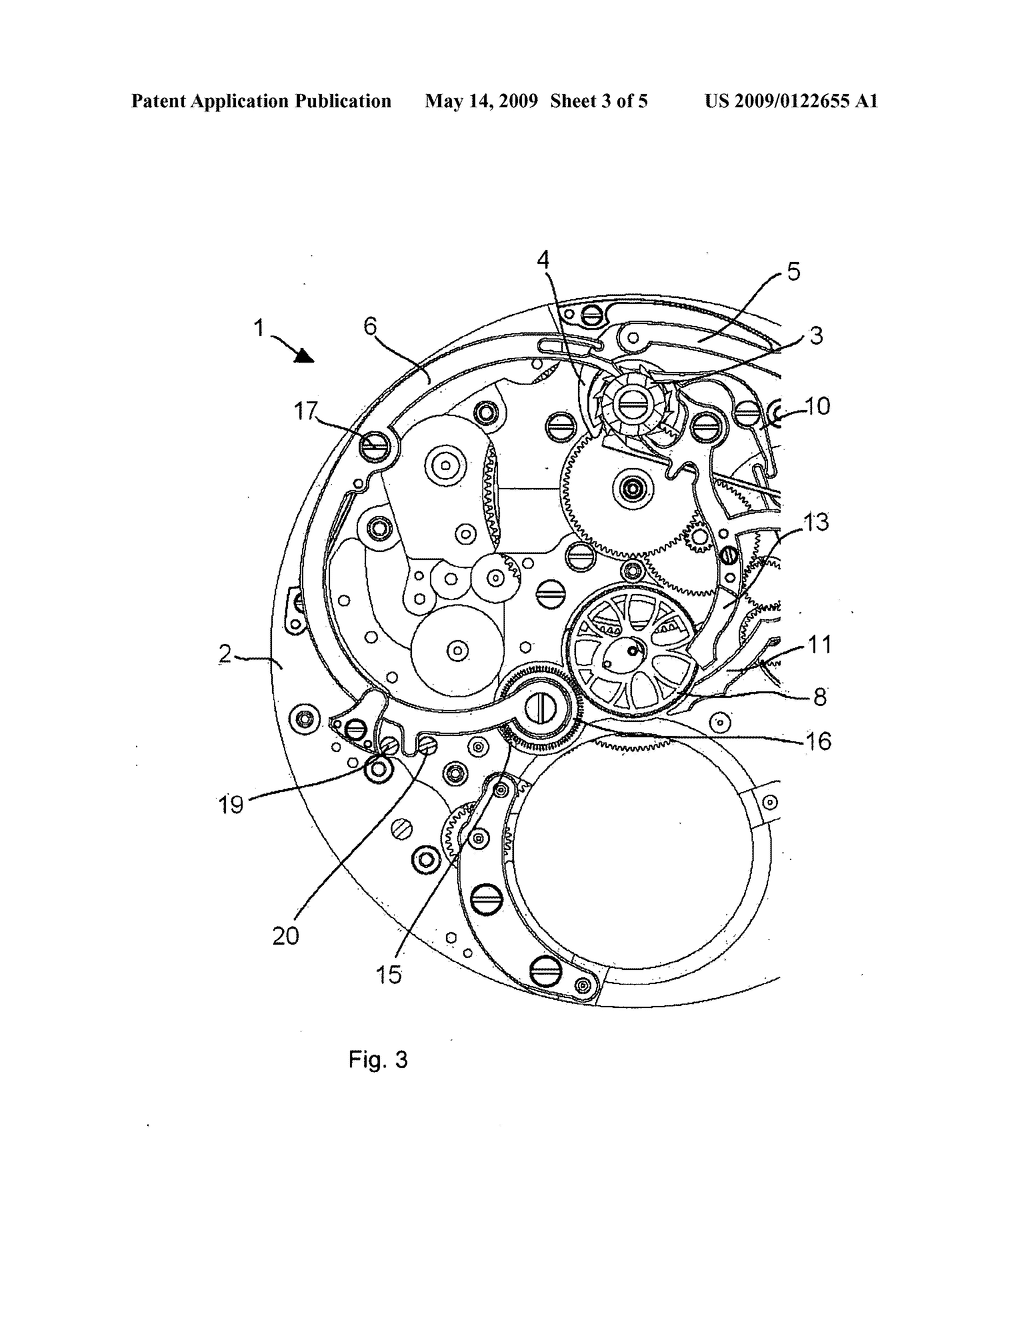 Clock Gears Diagram - WallsKid